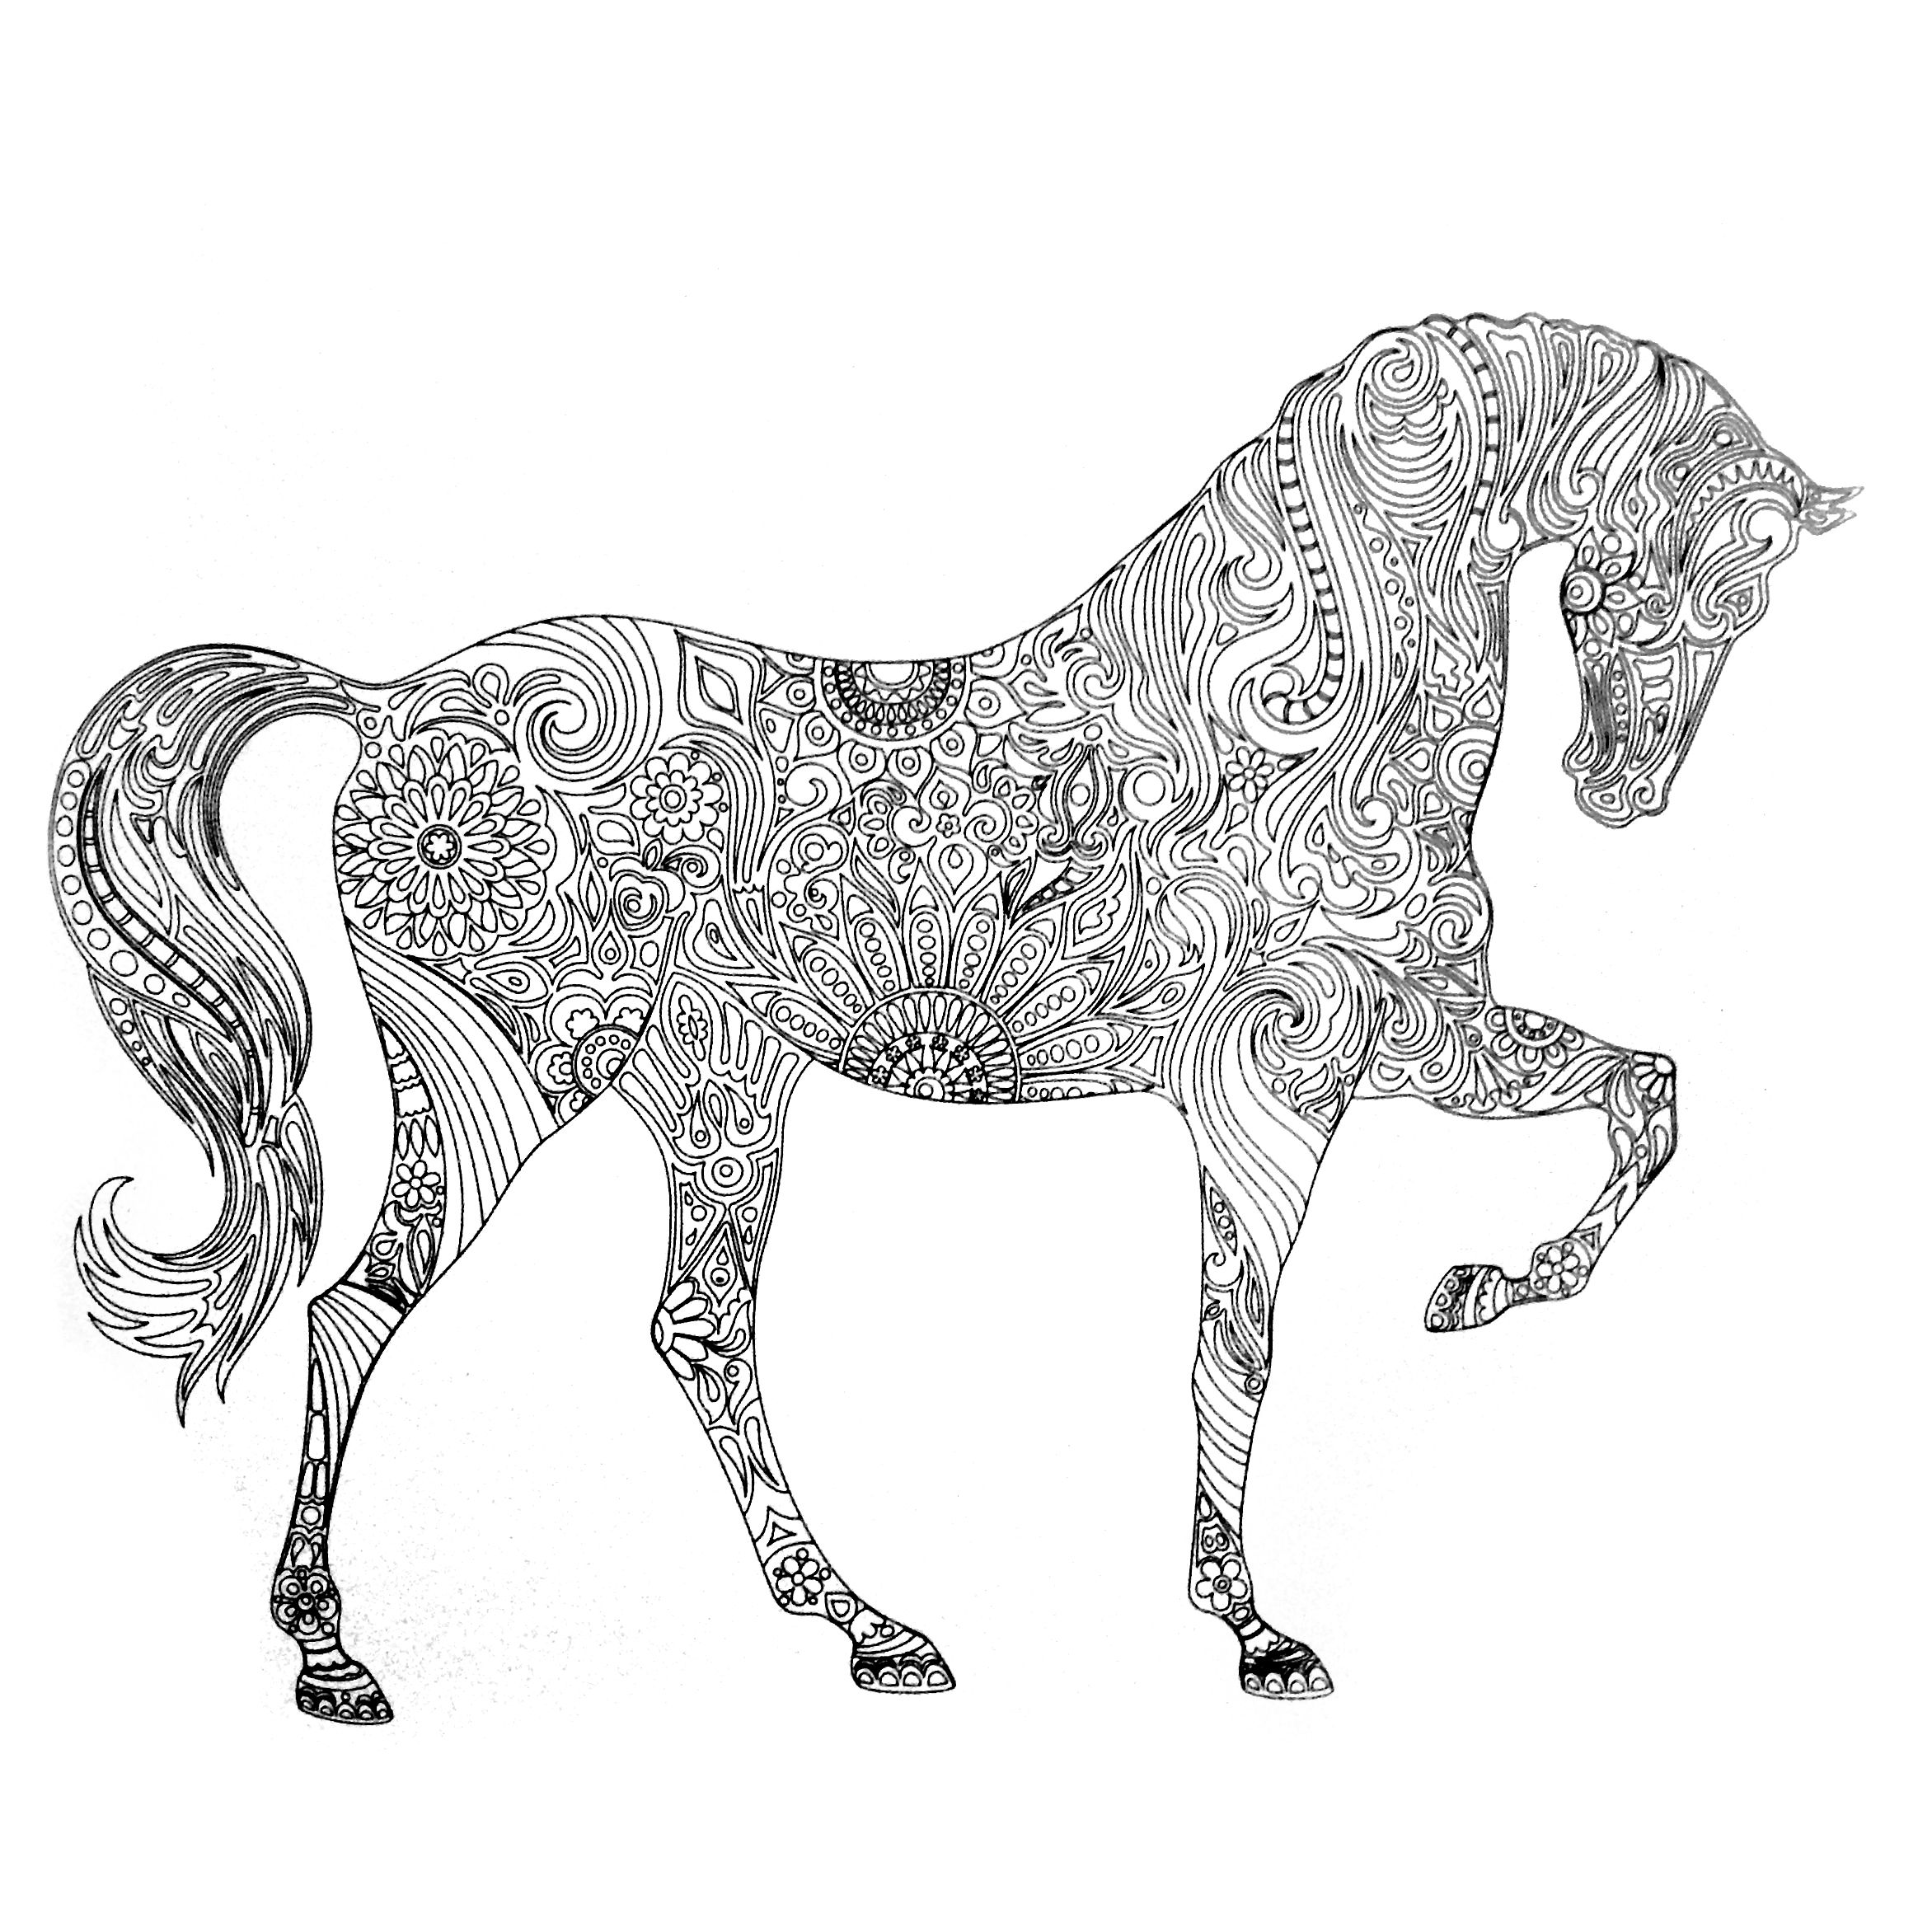 cool horse coloring pages wwwhmcoloringpagescom wp content uploads awesome horse horse coloring cool pages